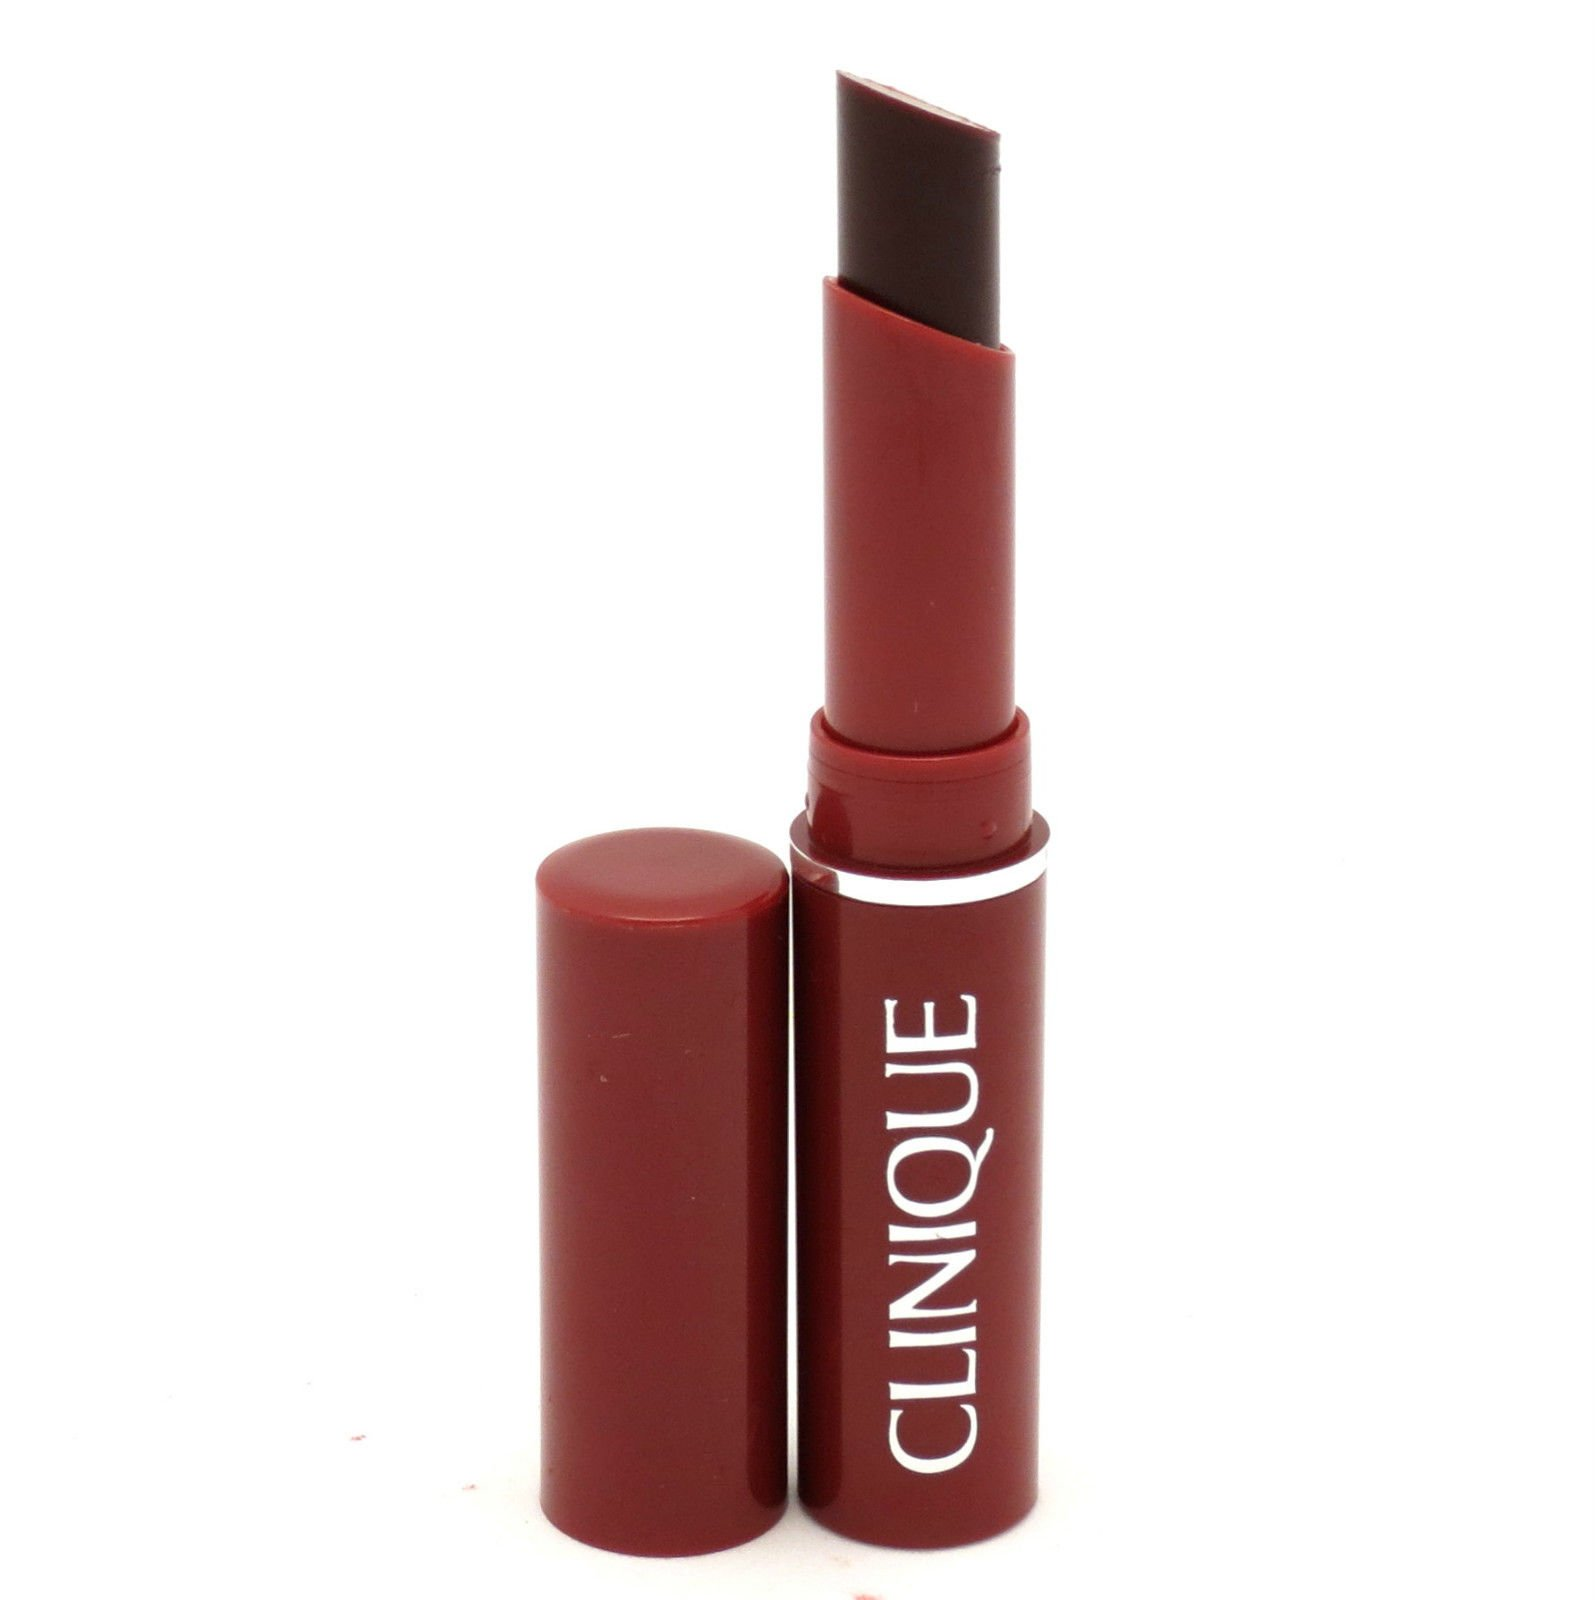 Clinique Almost Lipstick Black Honey 1.2Gms. Worth 10.42 Black Honey (Almost) 2